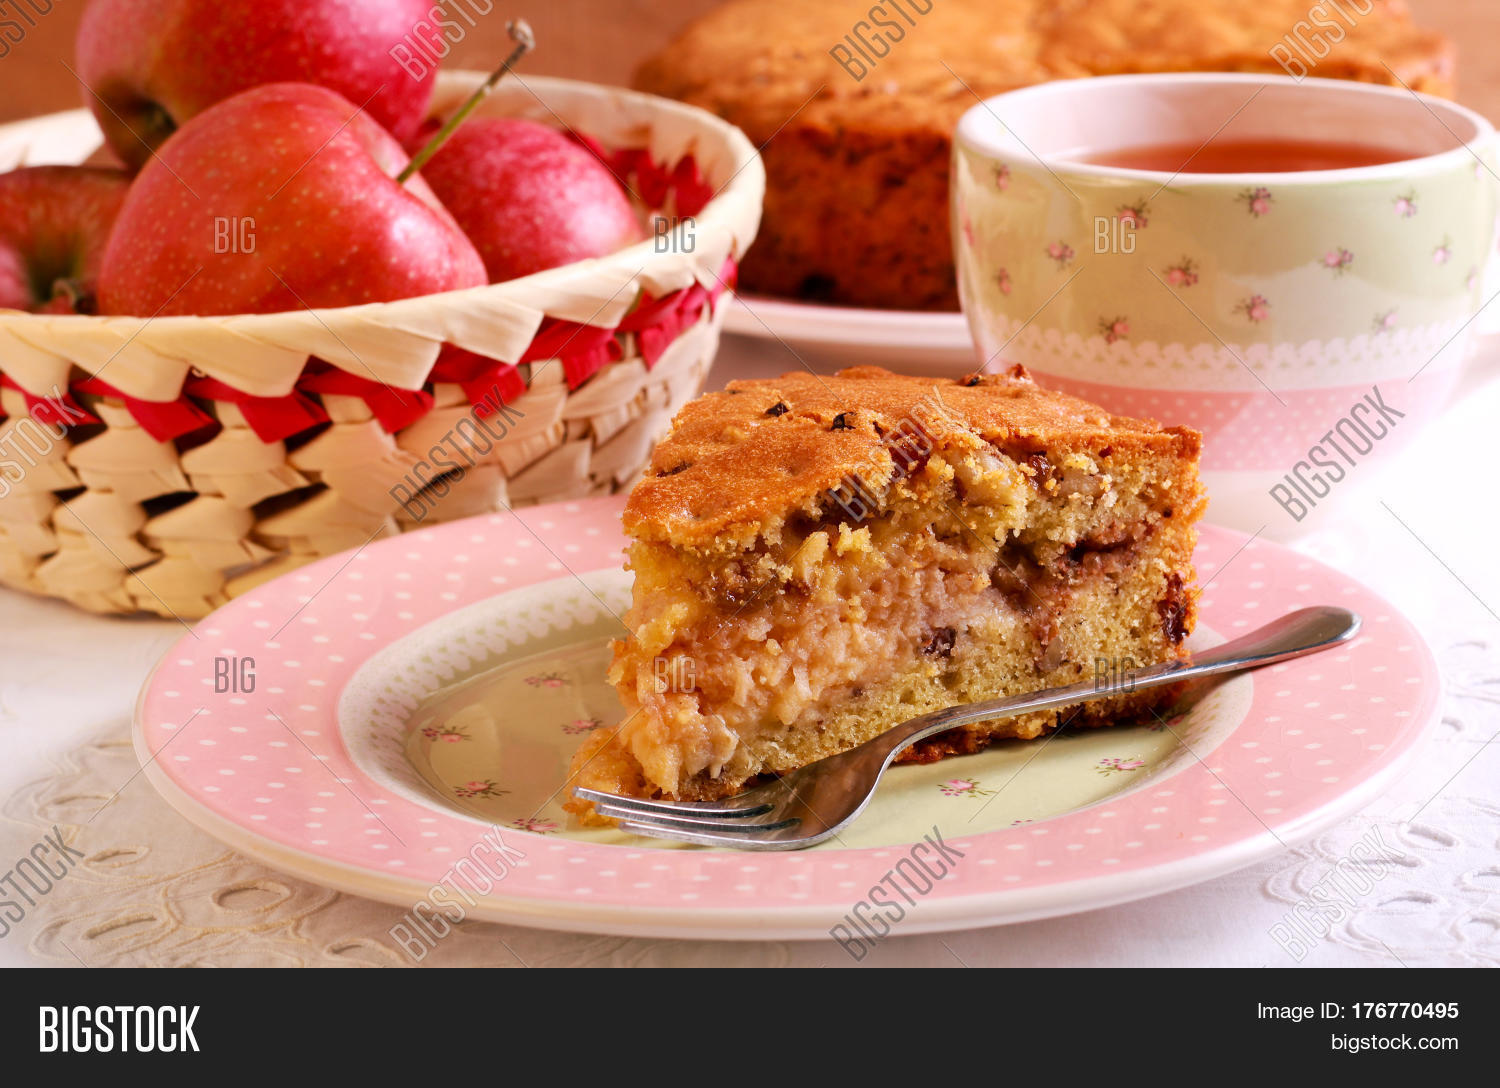 How To Make A Good Raisin And Nut Cake